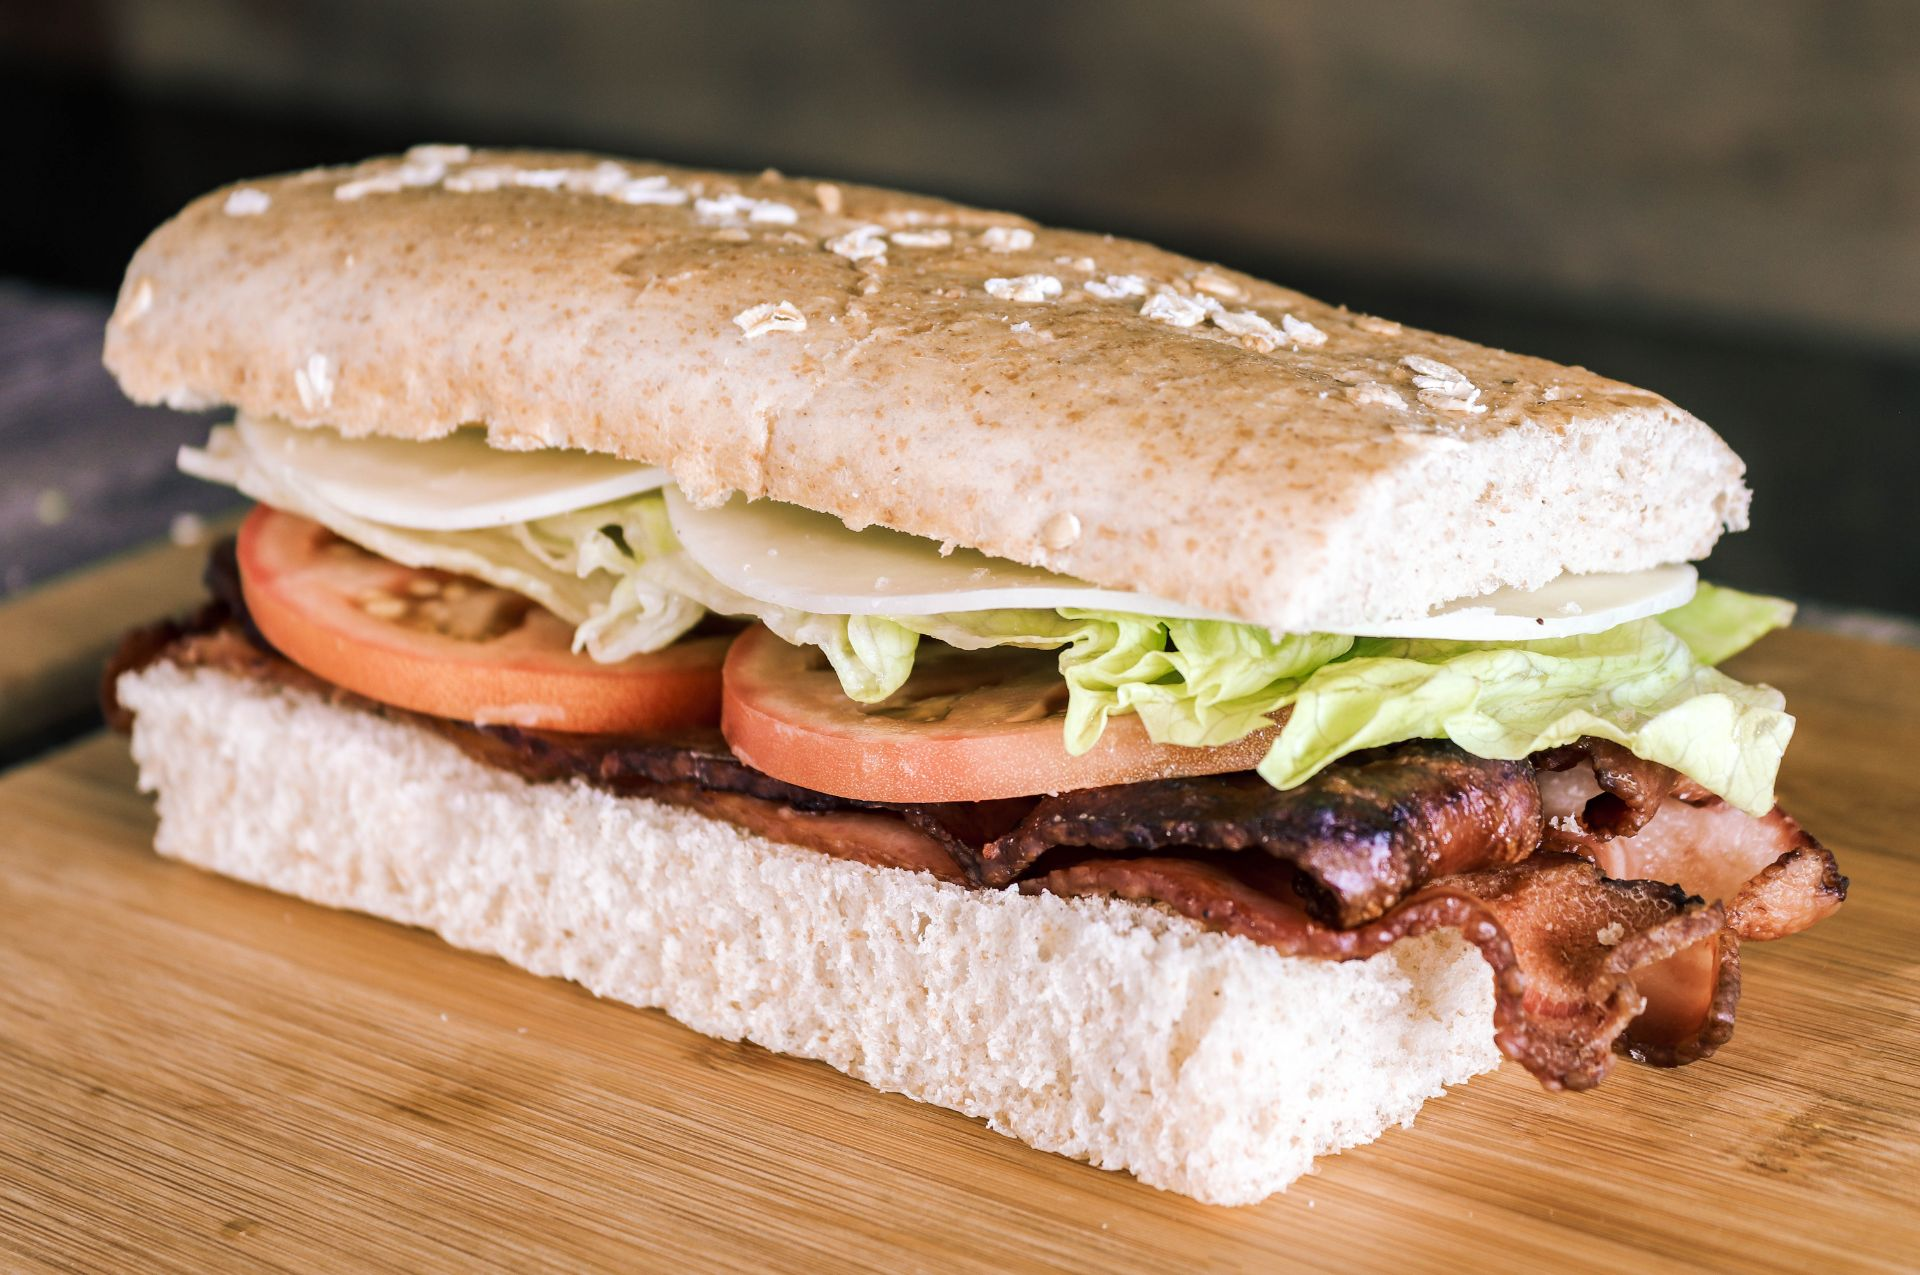 BLT sandwich. Bacon, lettuce and tomato